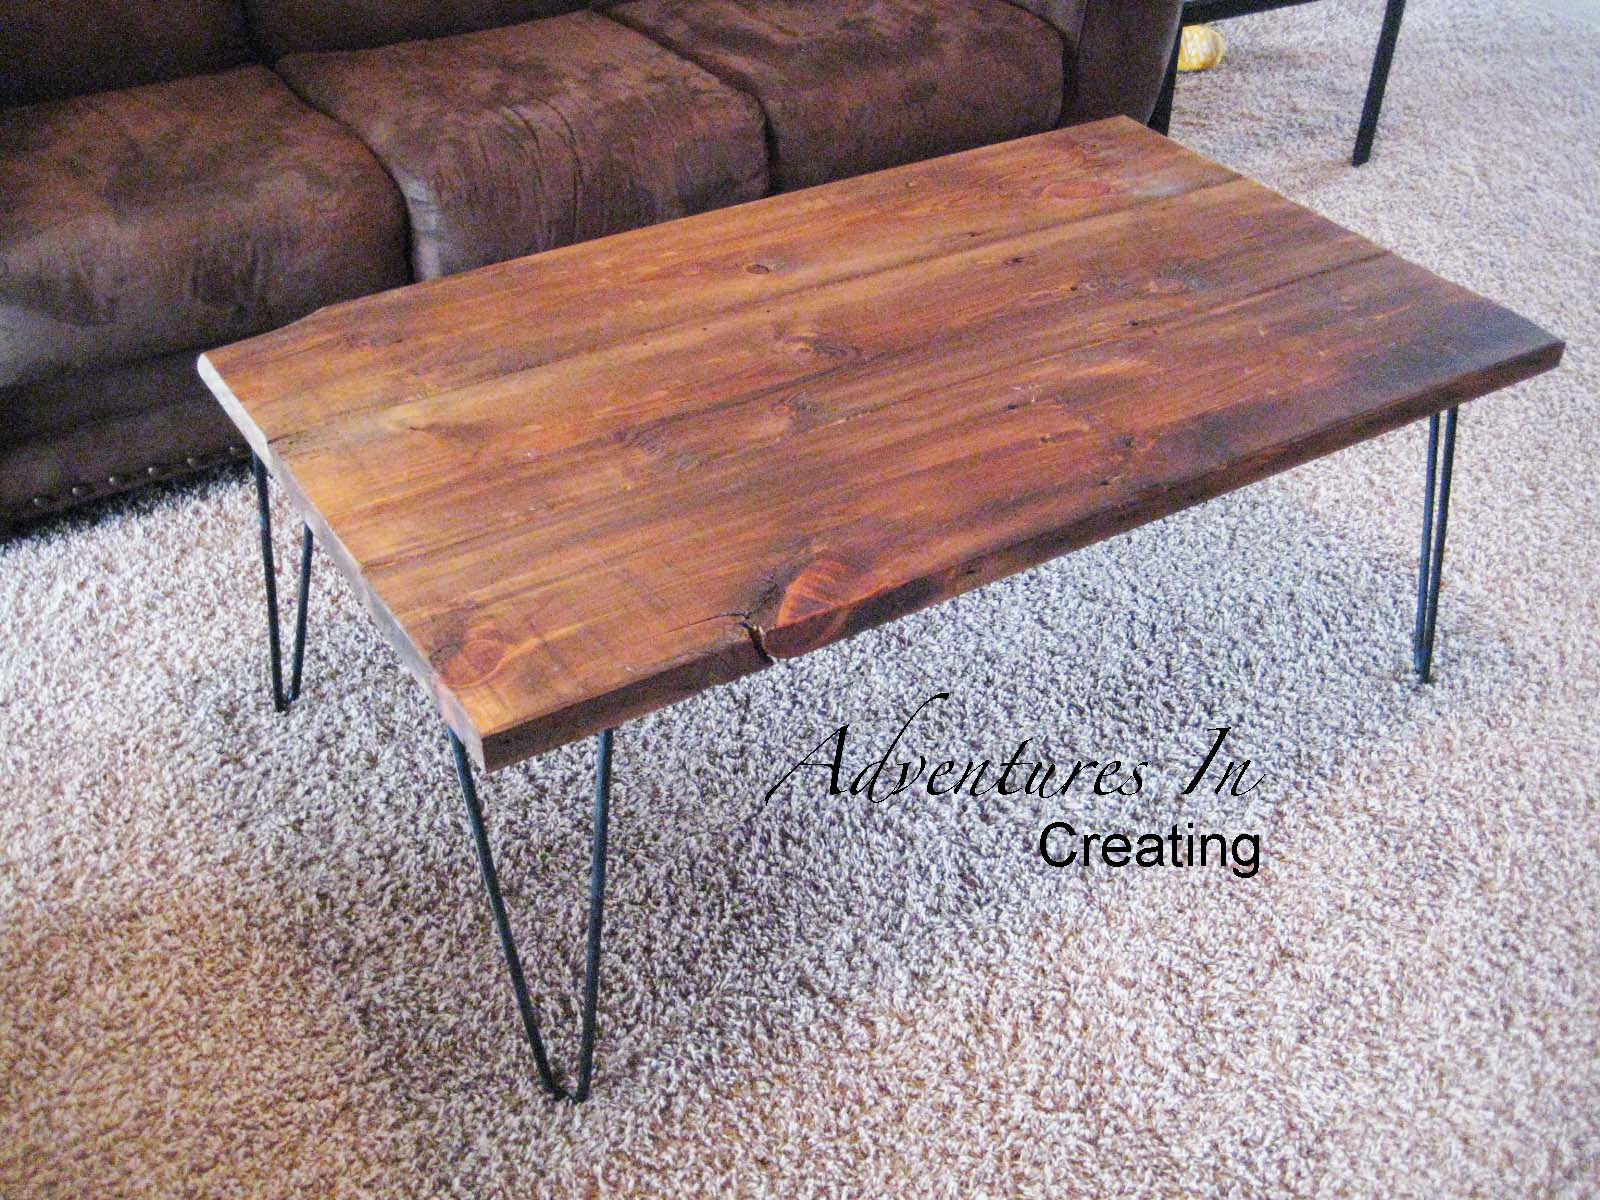 adventures in creating reclaimed wood coffee table